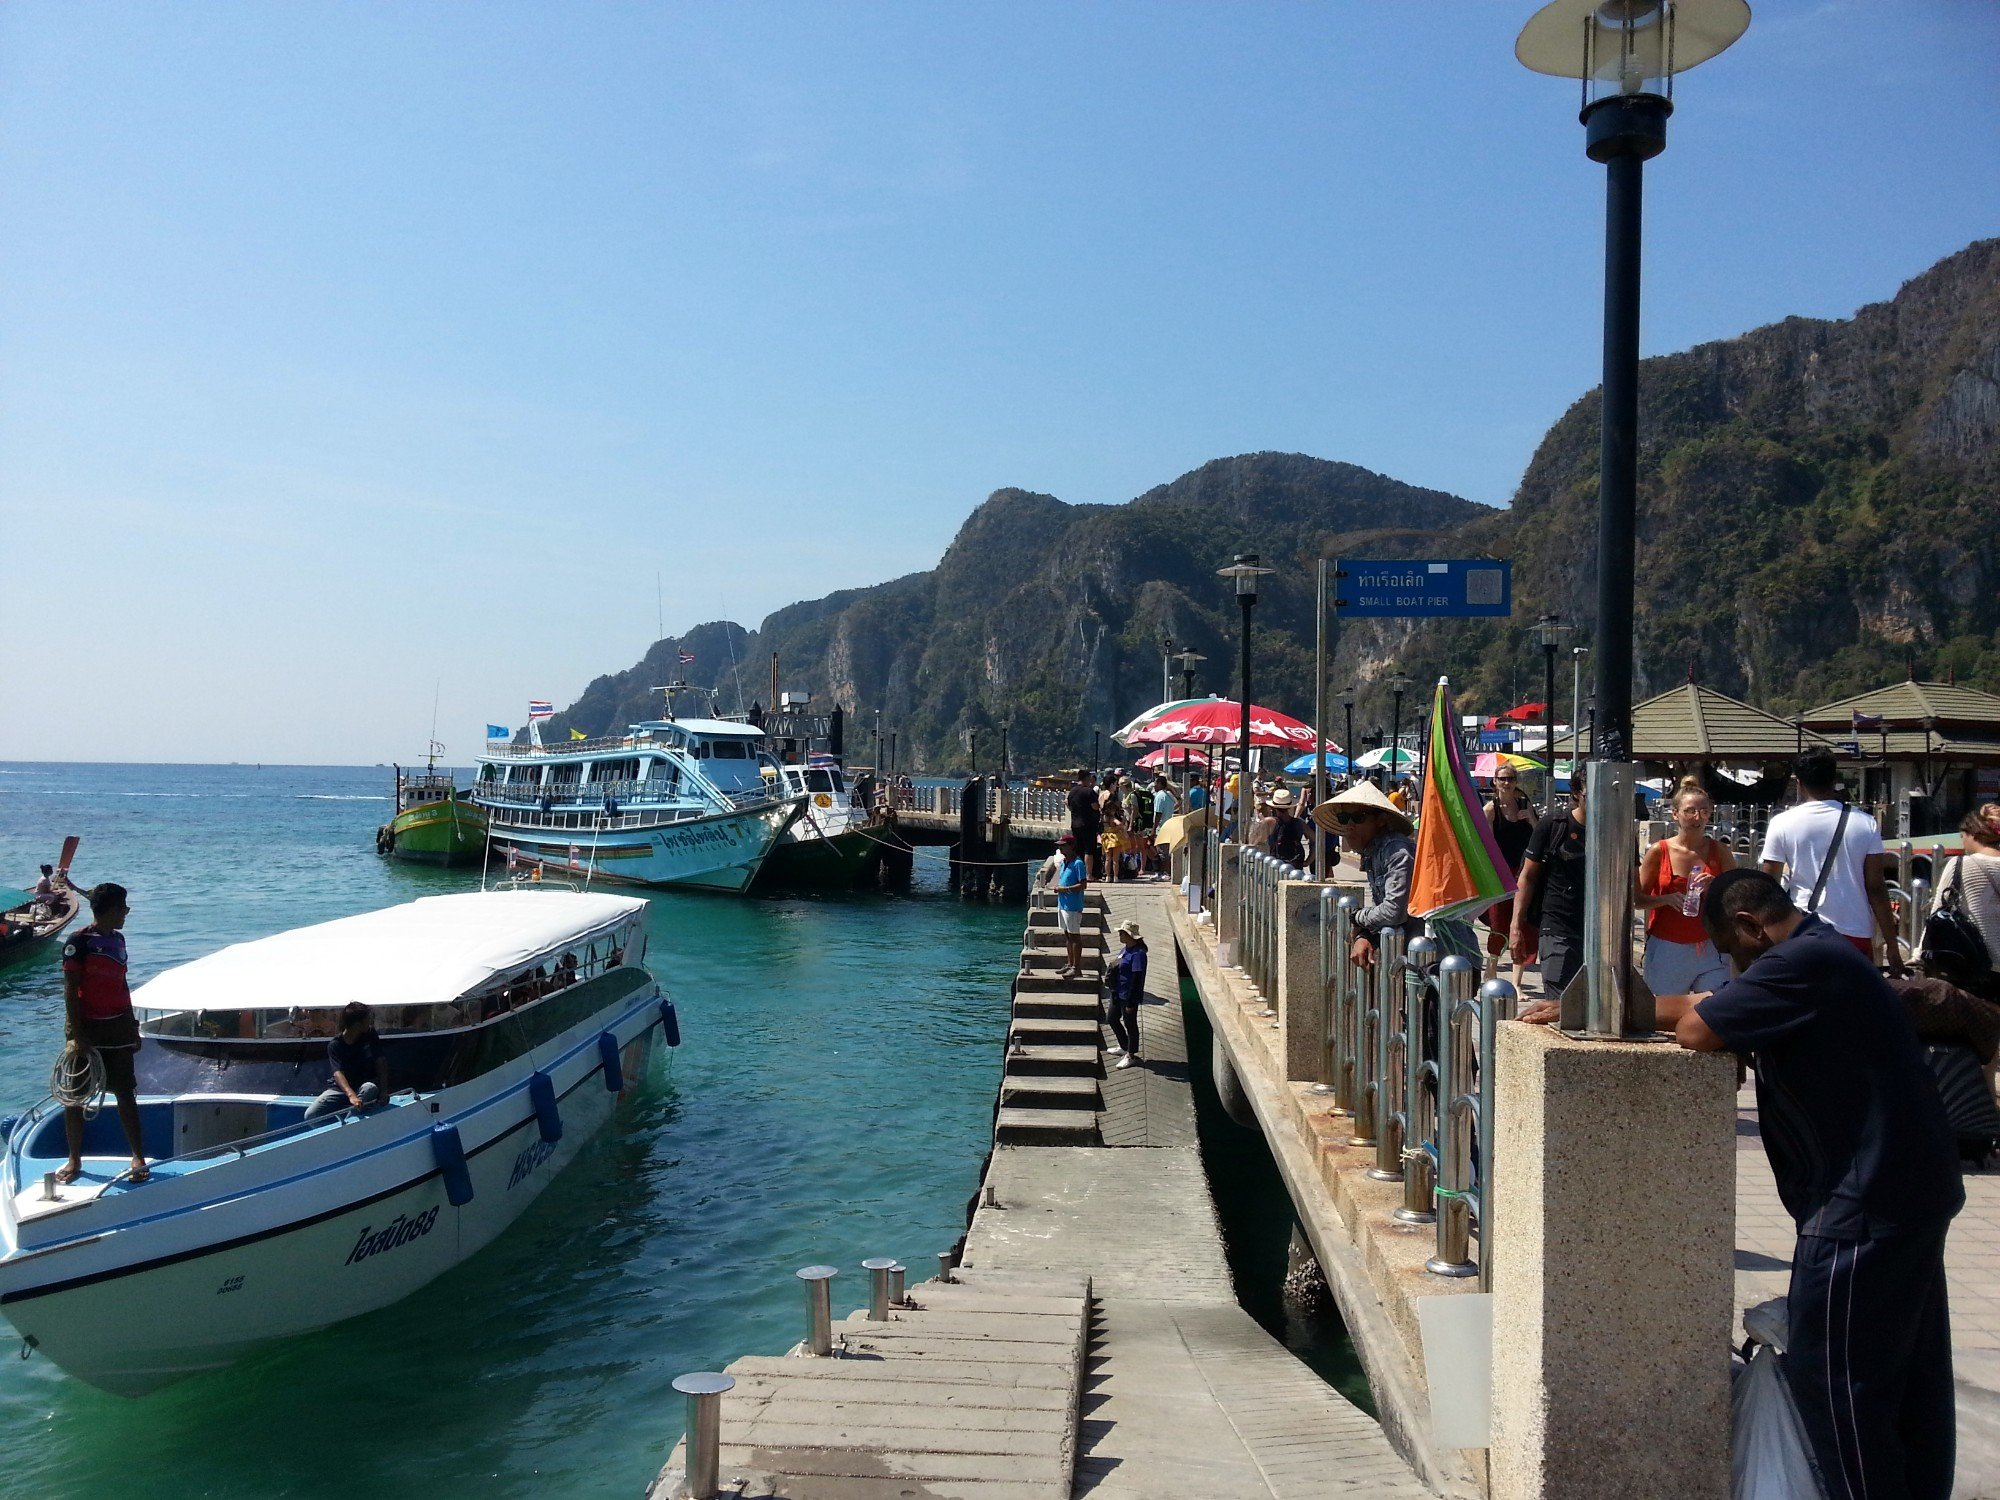 Pier in Tonsai Bay